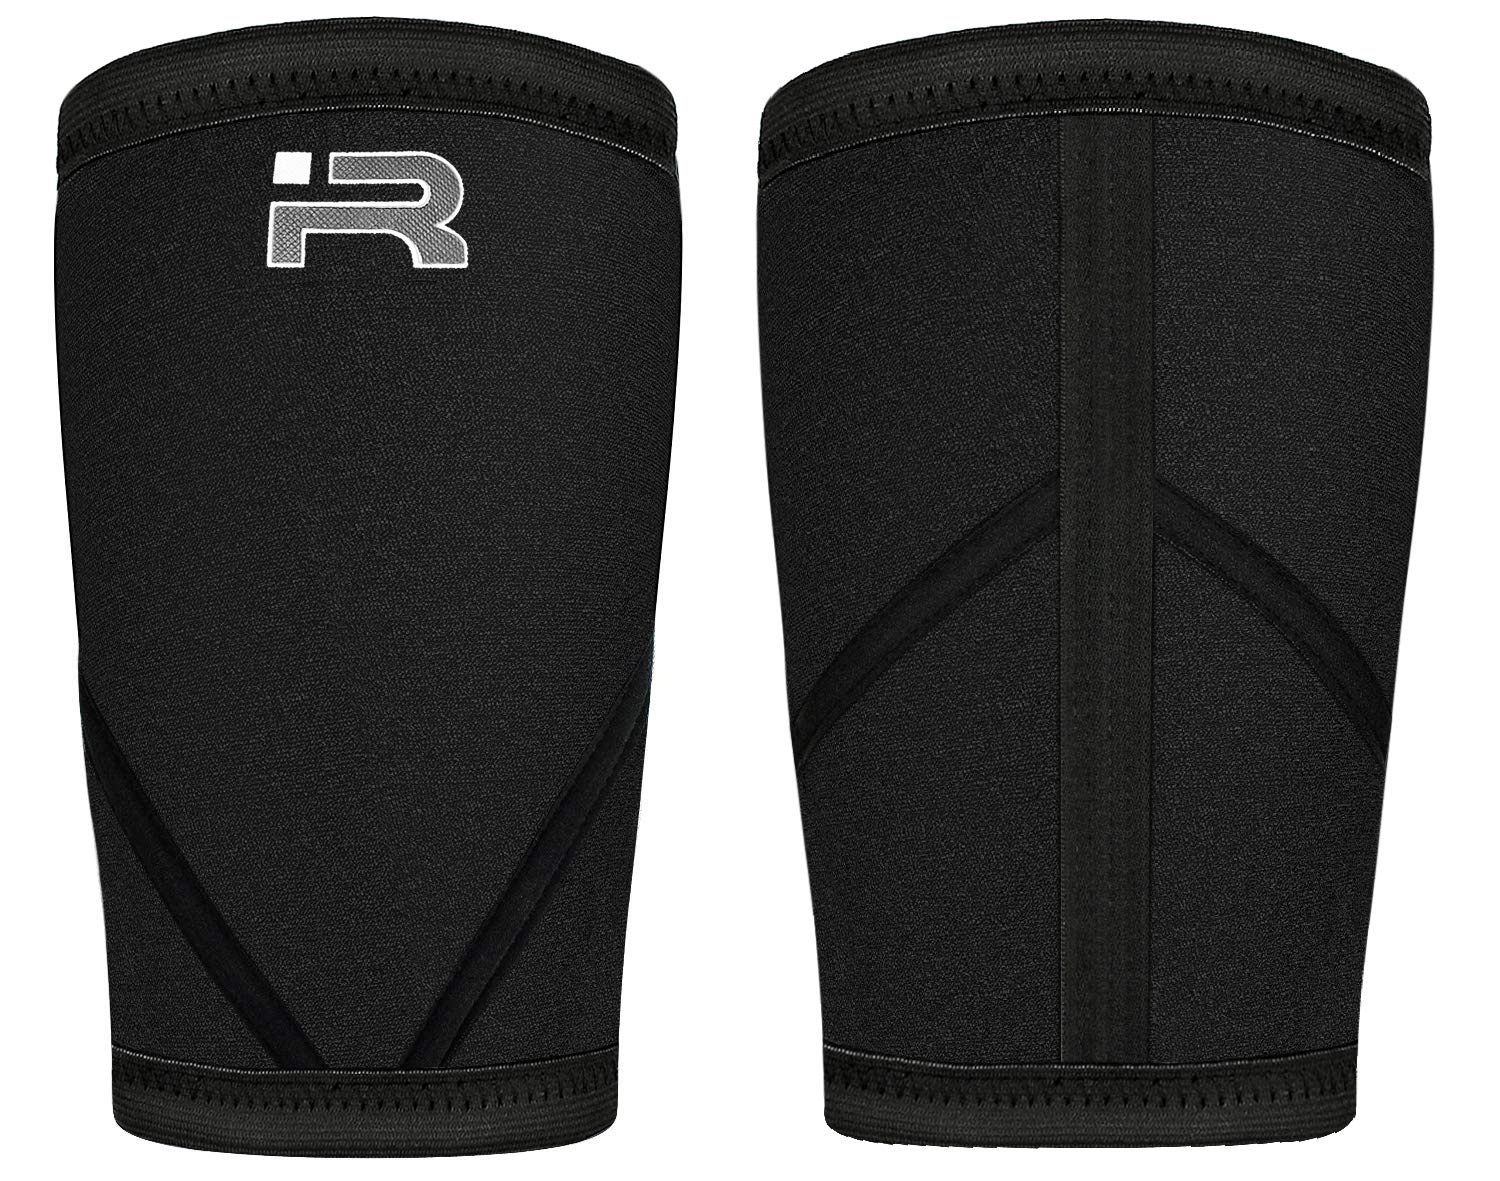 Iron Rebel Knee Sleeves XS - 4XL Black Performance Compression Sleeves for Powerlifting, Bodybuilding, and Weight Training | 7mm Neoprene, Double-Stitch Binding Design